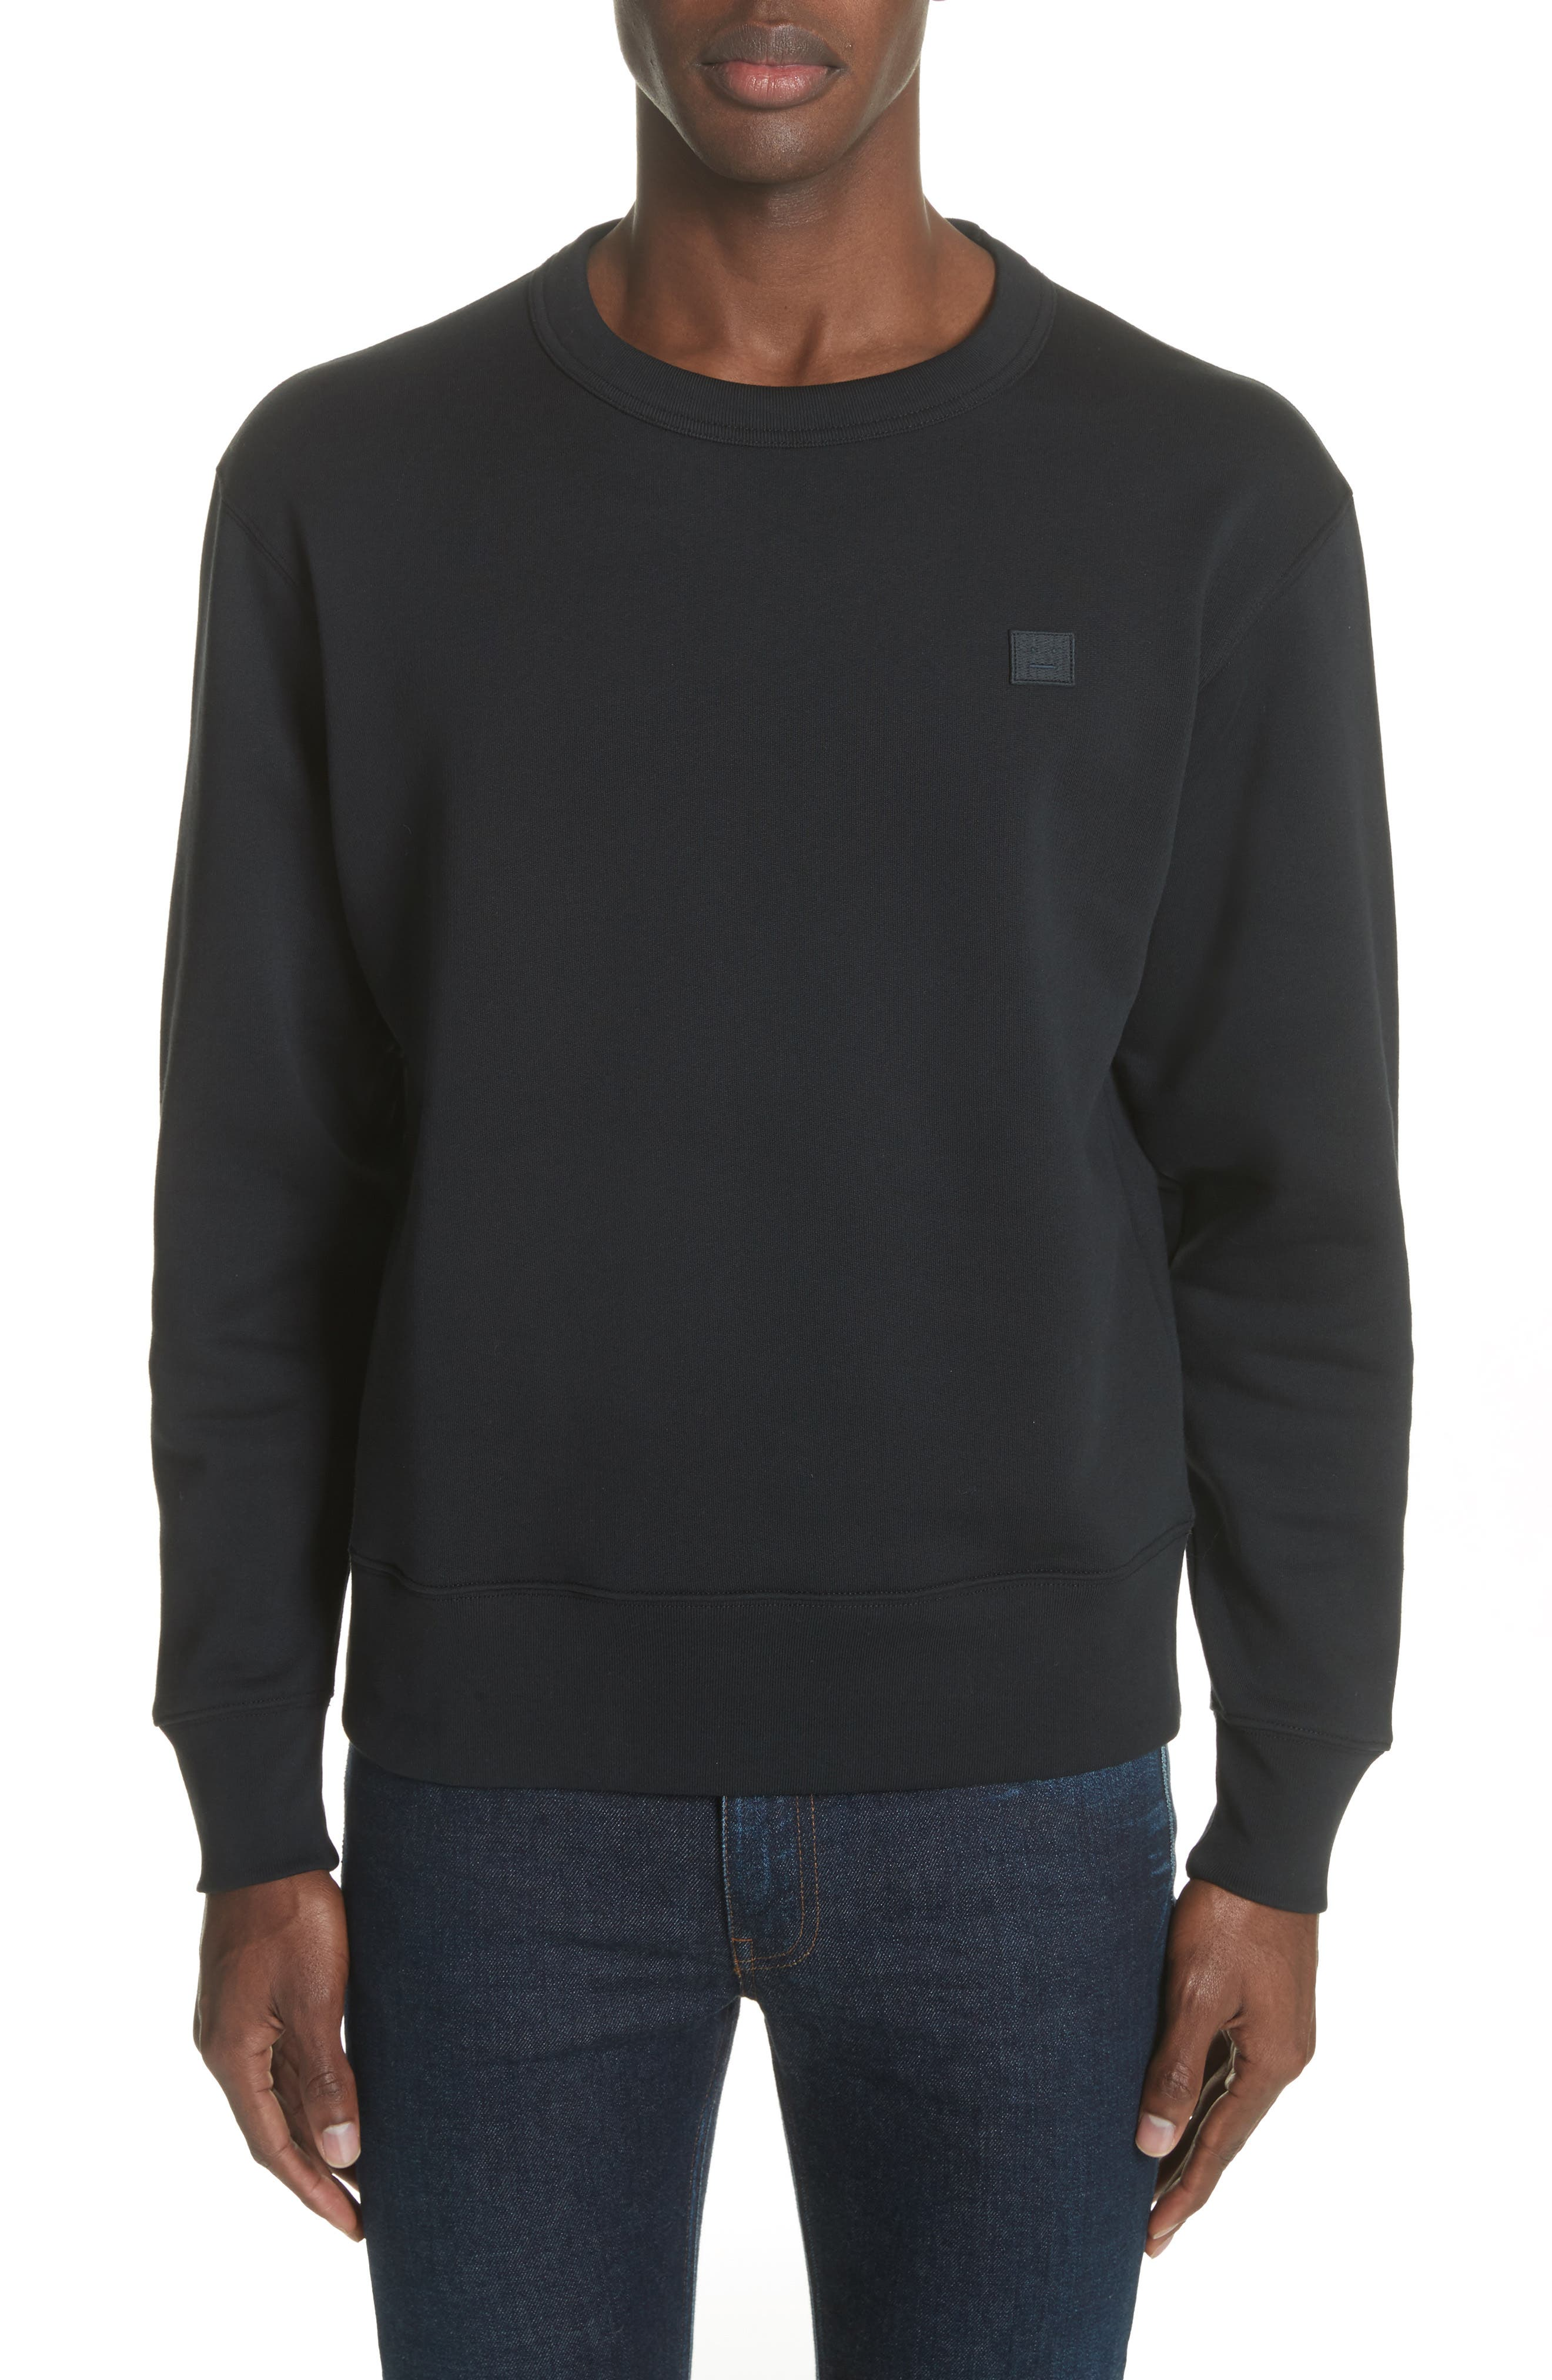 ACNE STUDIOS, Fairview Face Crewneck Sweatshirt, Main thumbnail 1, color, BLACK